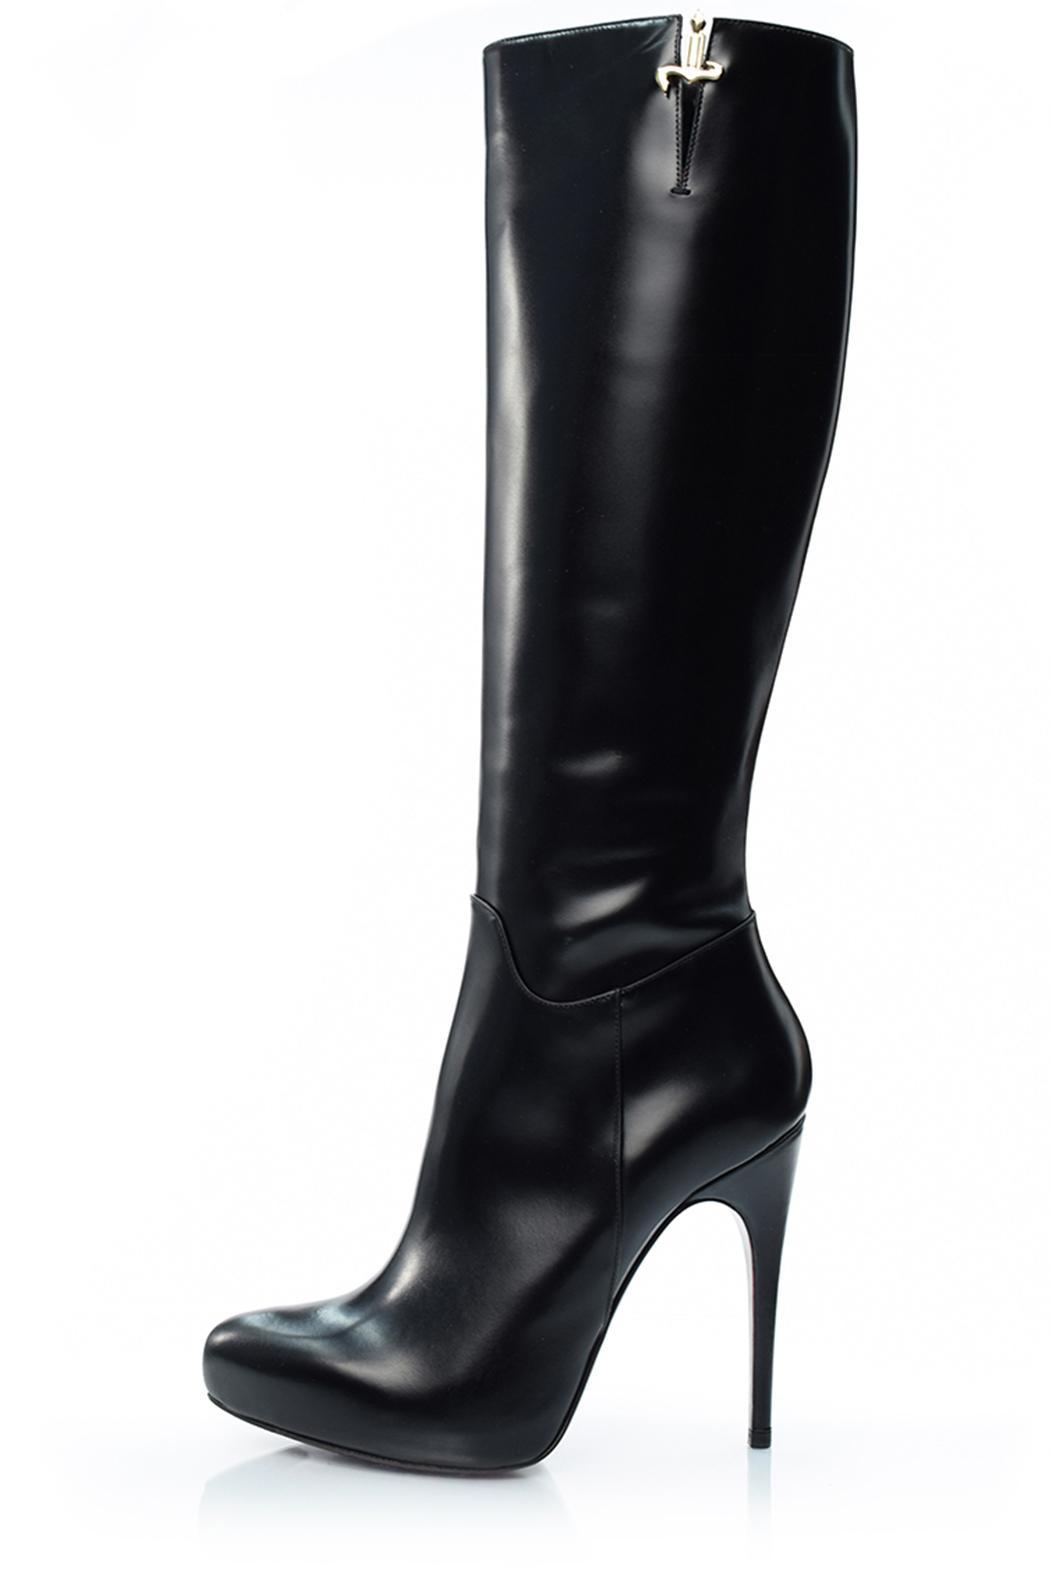 Cesare Paciotti Tall Black Boot - Front Full Image